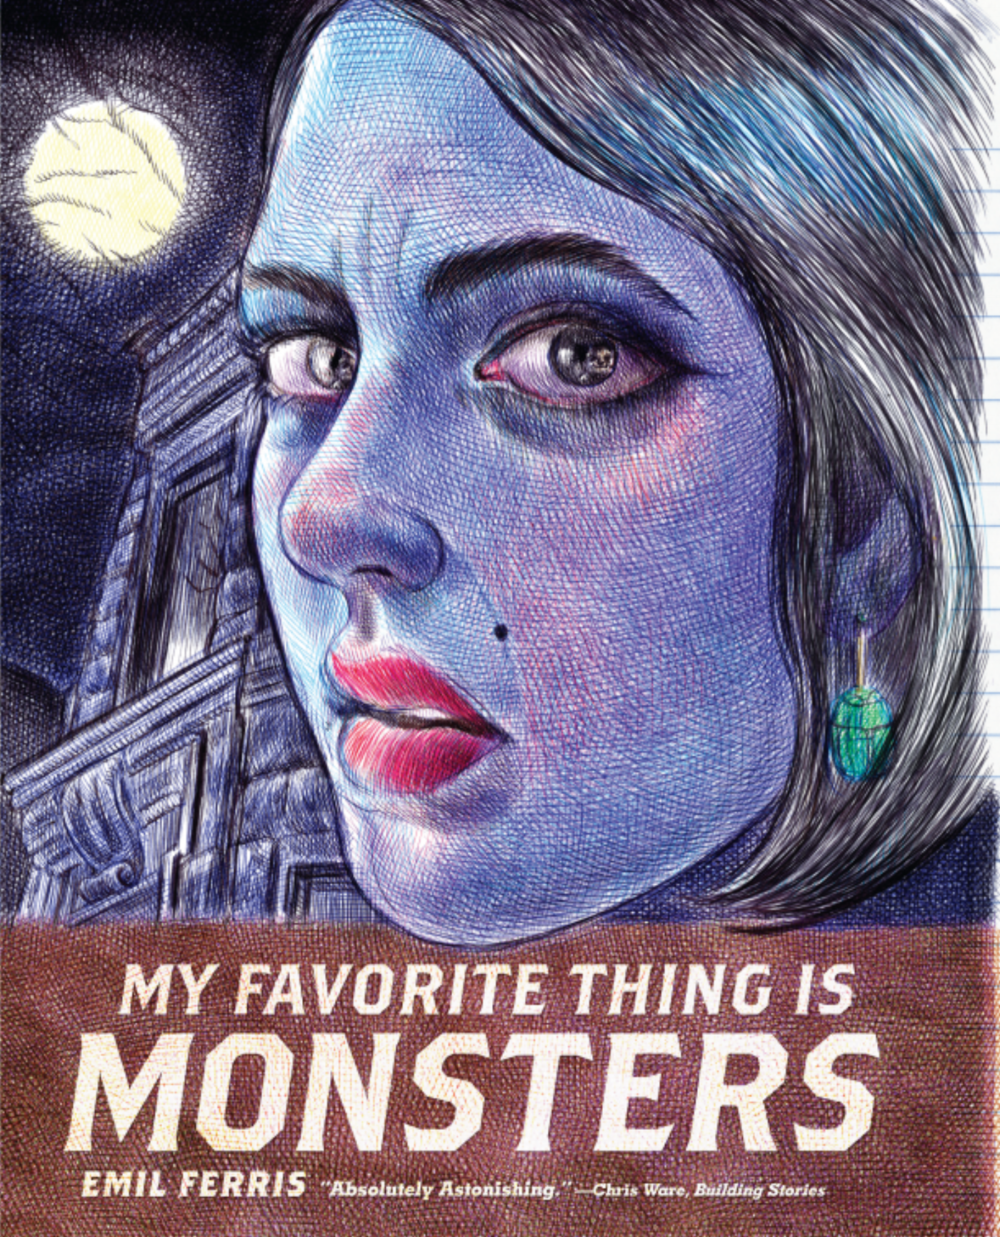 Emil Ferris. My Favourite Thing is Monsters. Fantagraphics. $52.99, 386 pp., ISBN: 9781606999592